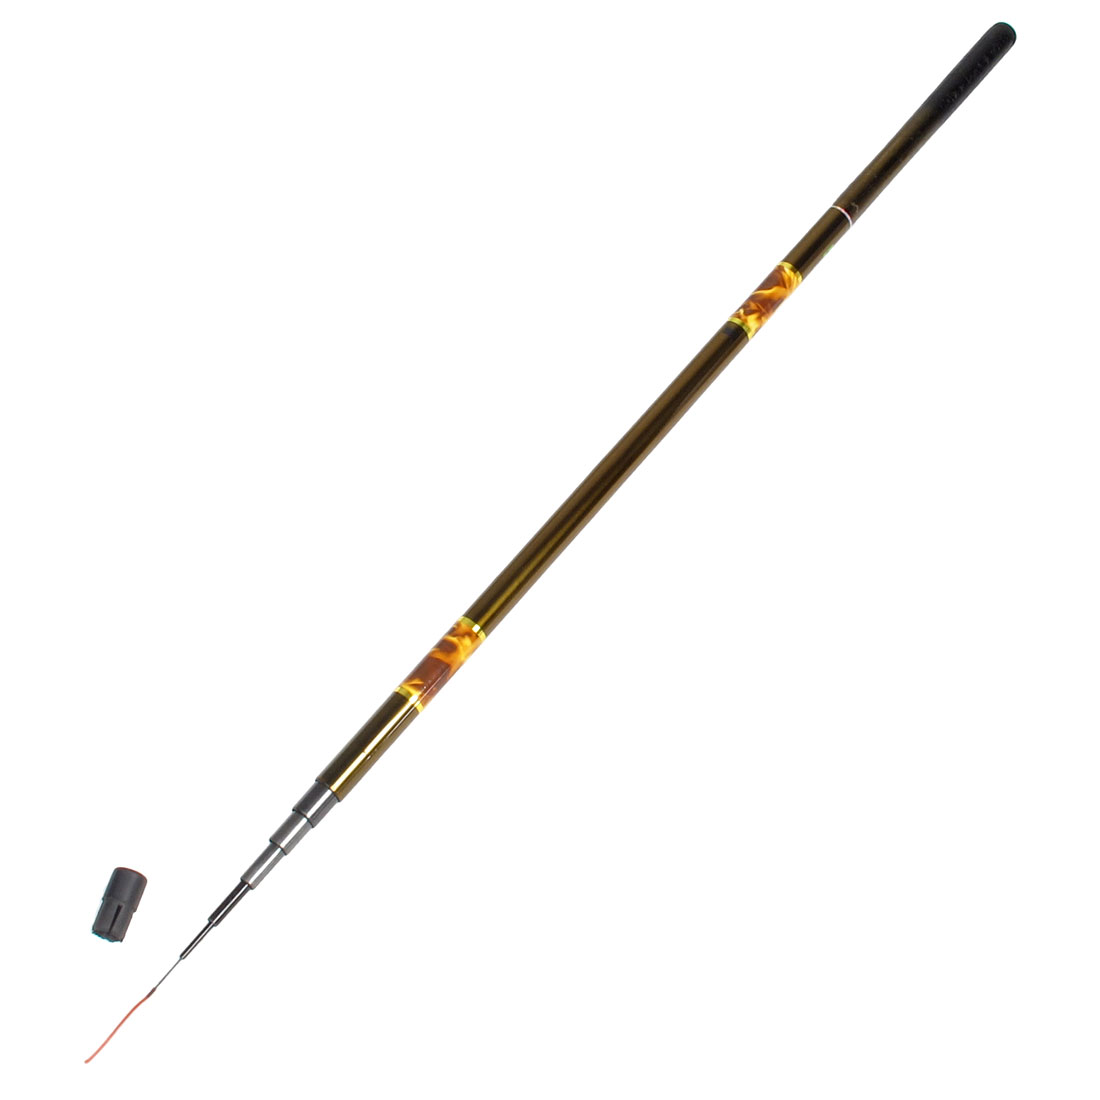 Gold Tone Black 3.2M 7 Sections Freshwater Telescopic Fishing Pole